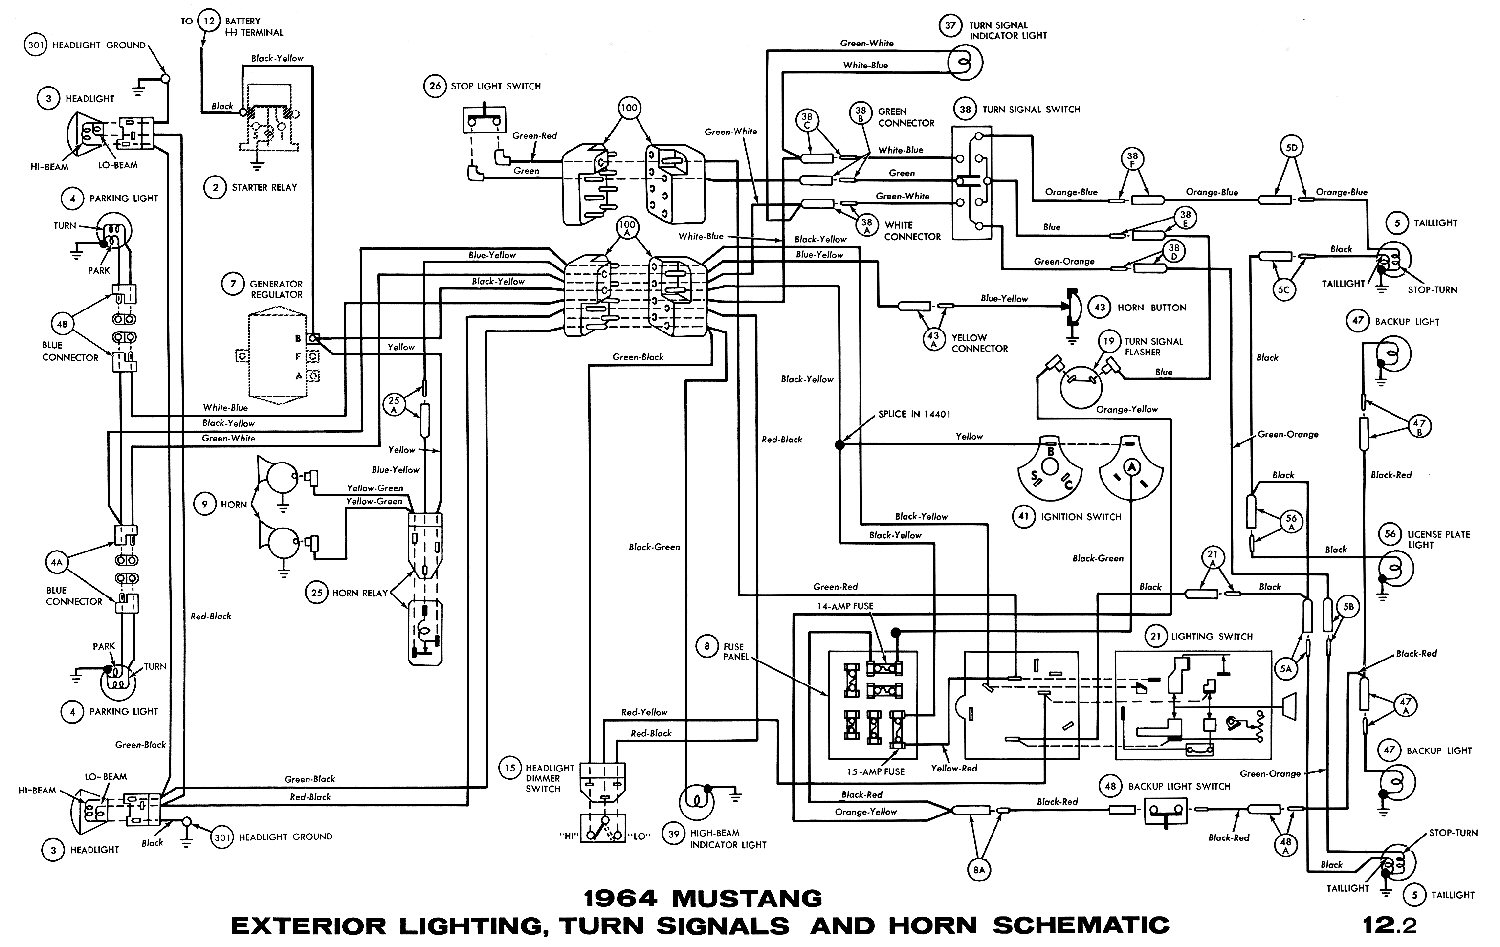 1969 mustang wiring diagram 1969 ranchero wiring diagram \u2022 wiring 69 Cougar Dash Wiring Diagram 1969 cougar wiring diagram